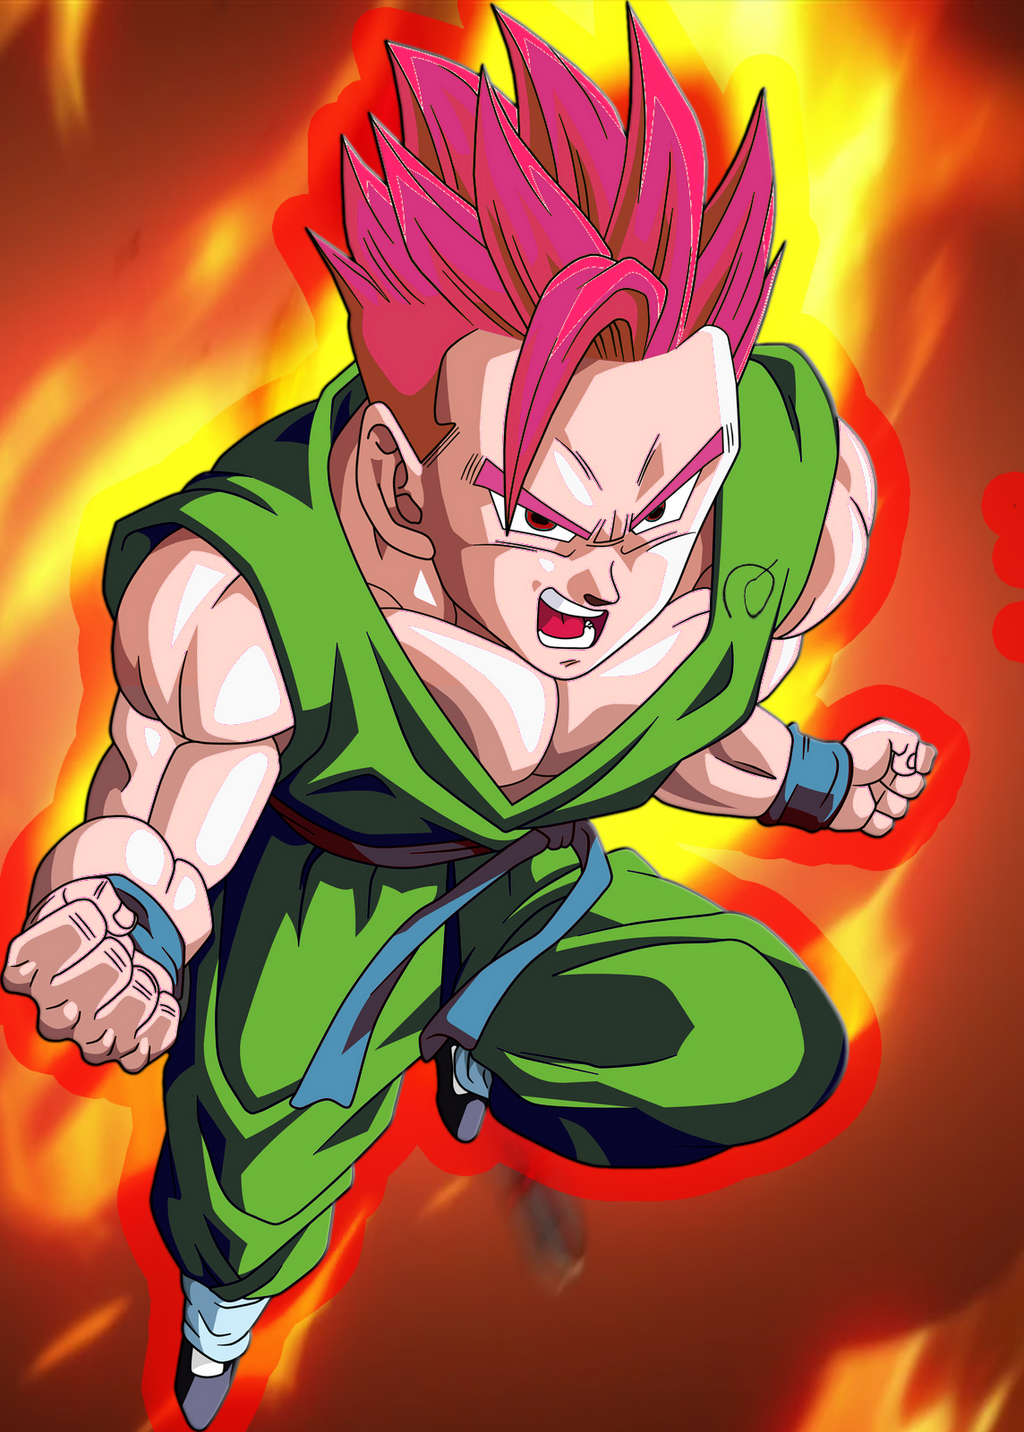 Super Saiyan God Gohan by KrysysDaPro on DeviantArt